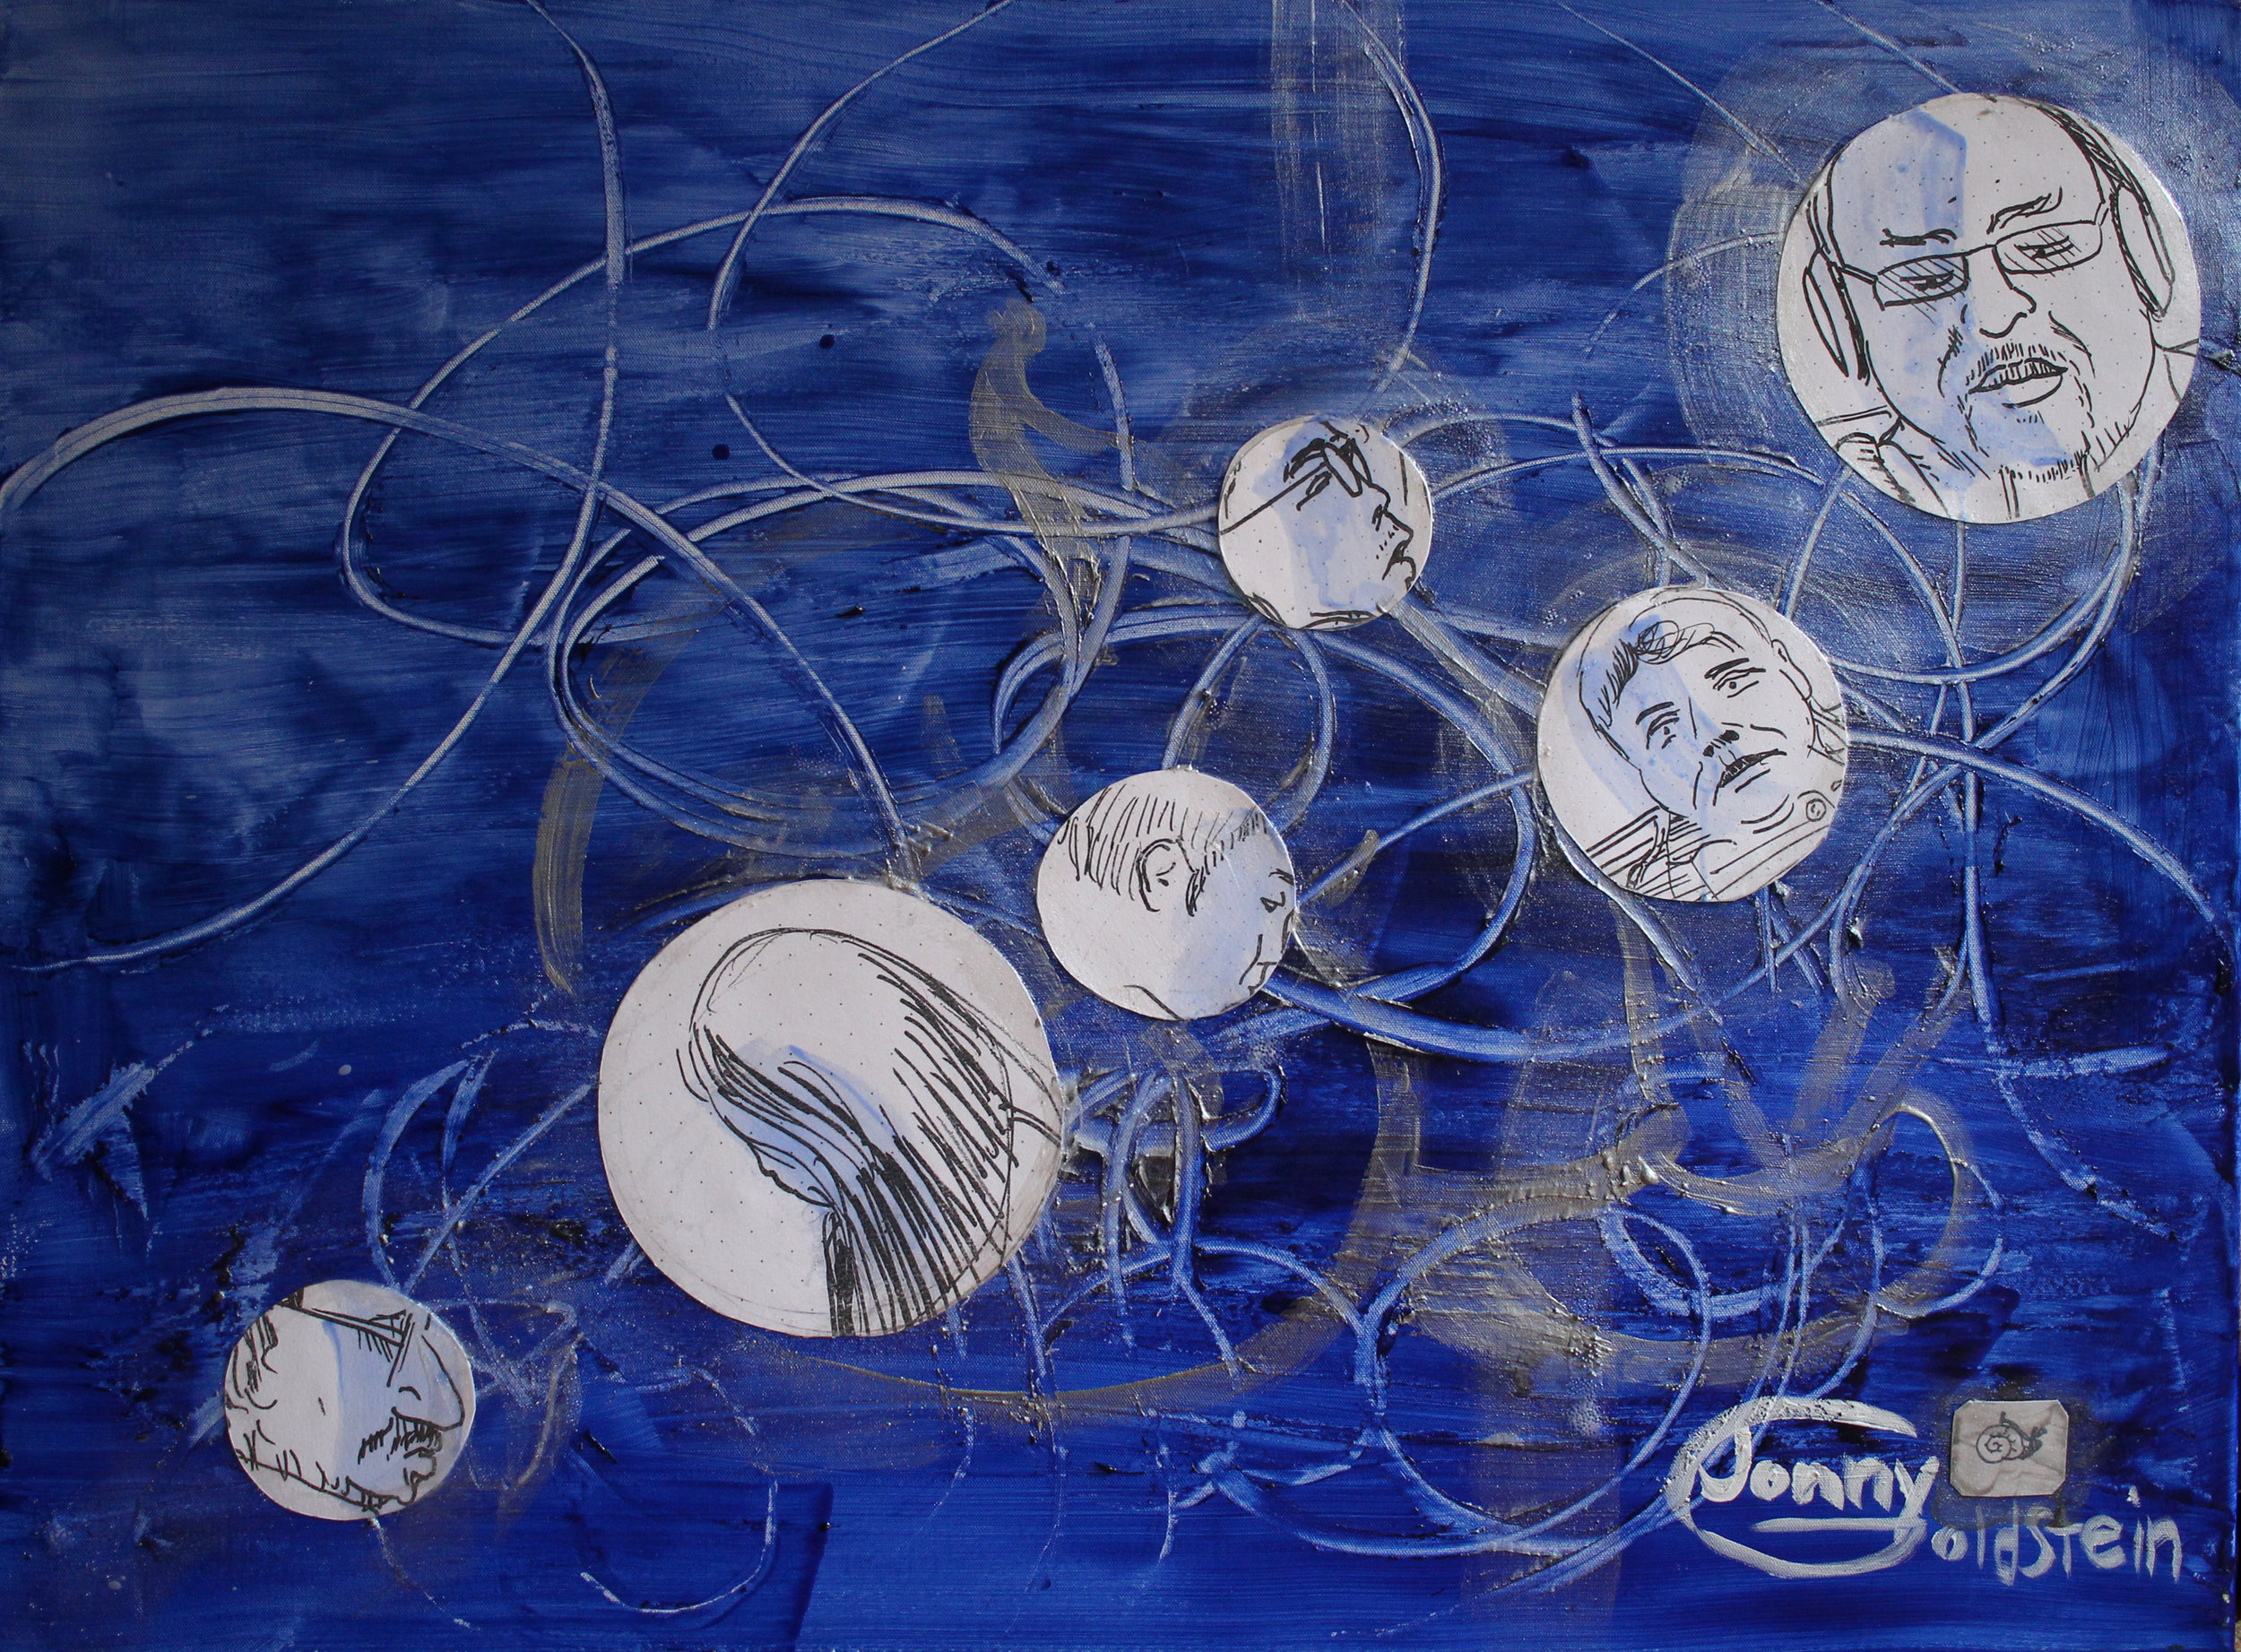 Title: Subway Bubbles: Sea Snailrider.. MIxed Media: acryclic, Xerographs, and glass beads on canvas.